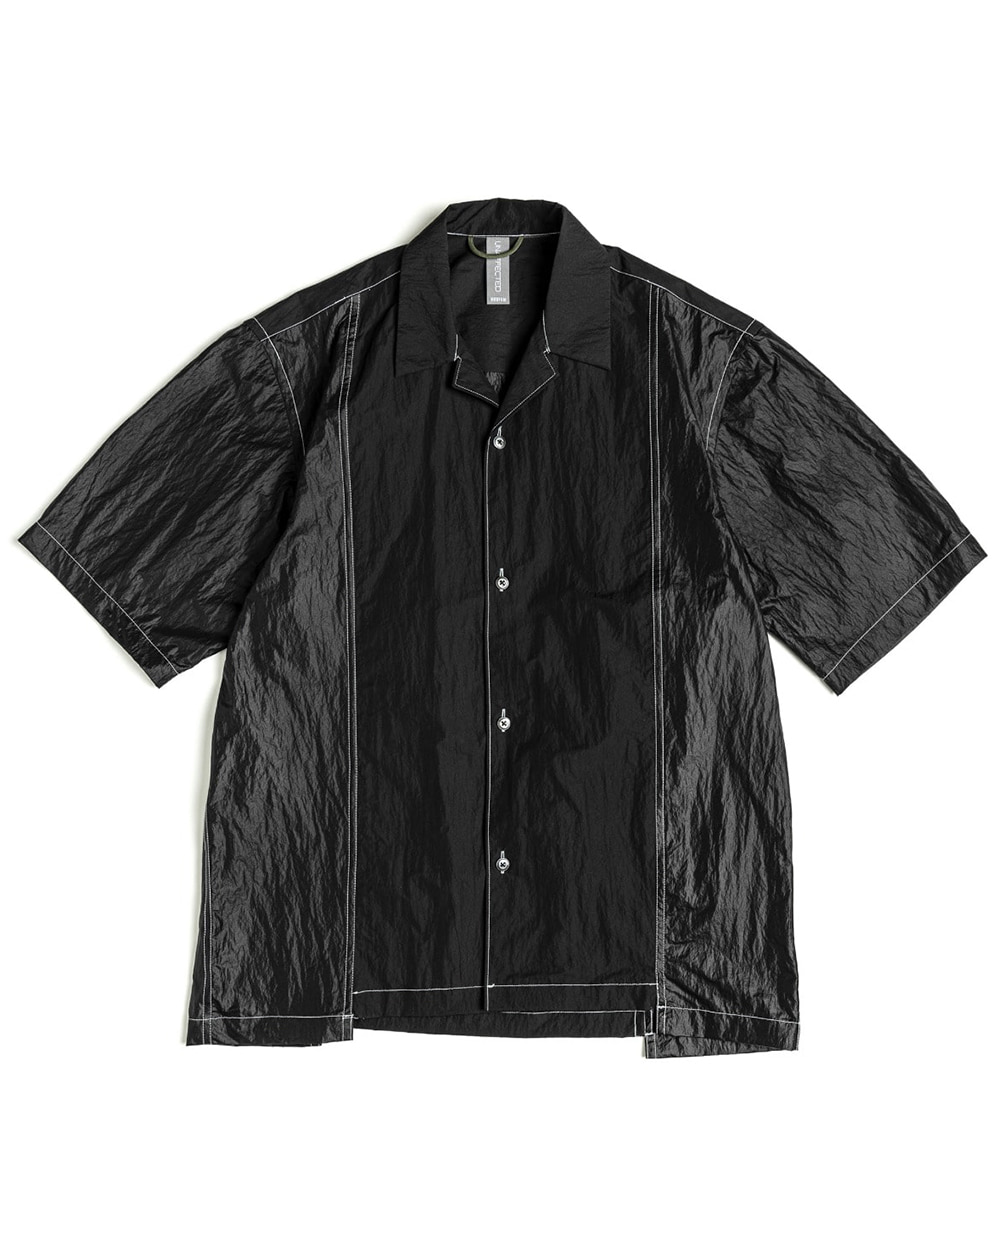 언어펙티드 CONTRAST PANEL HALF SHIRT (Black)